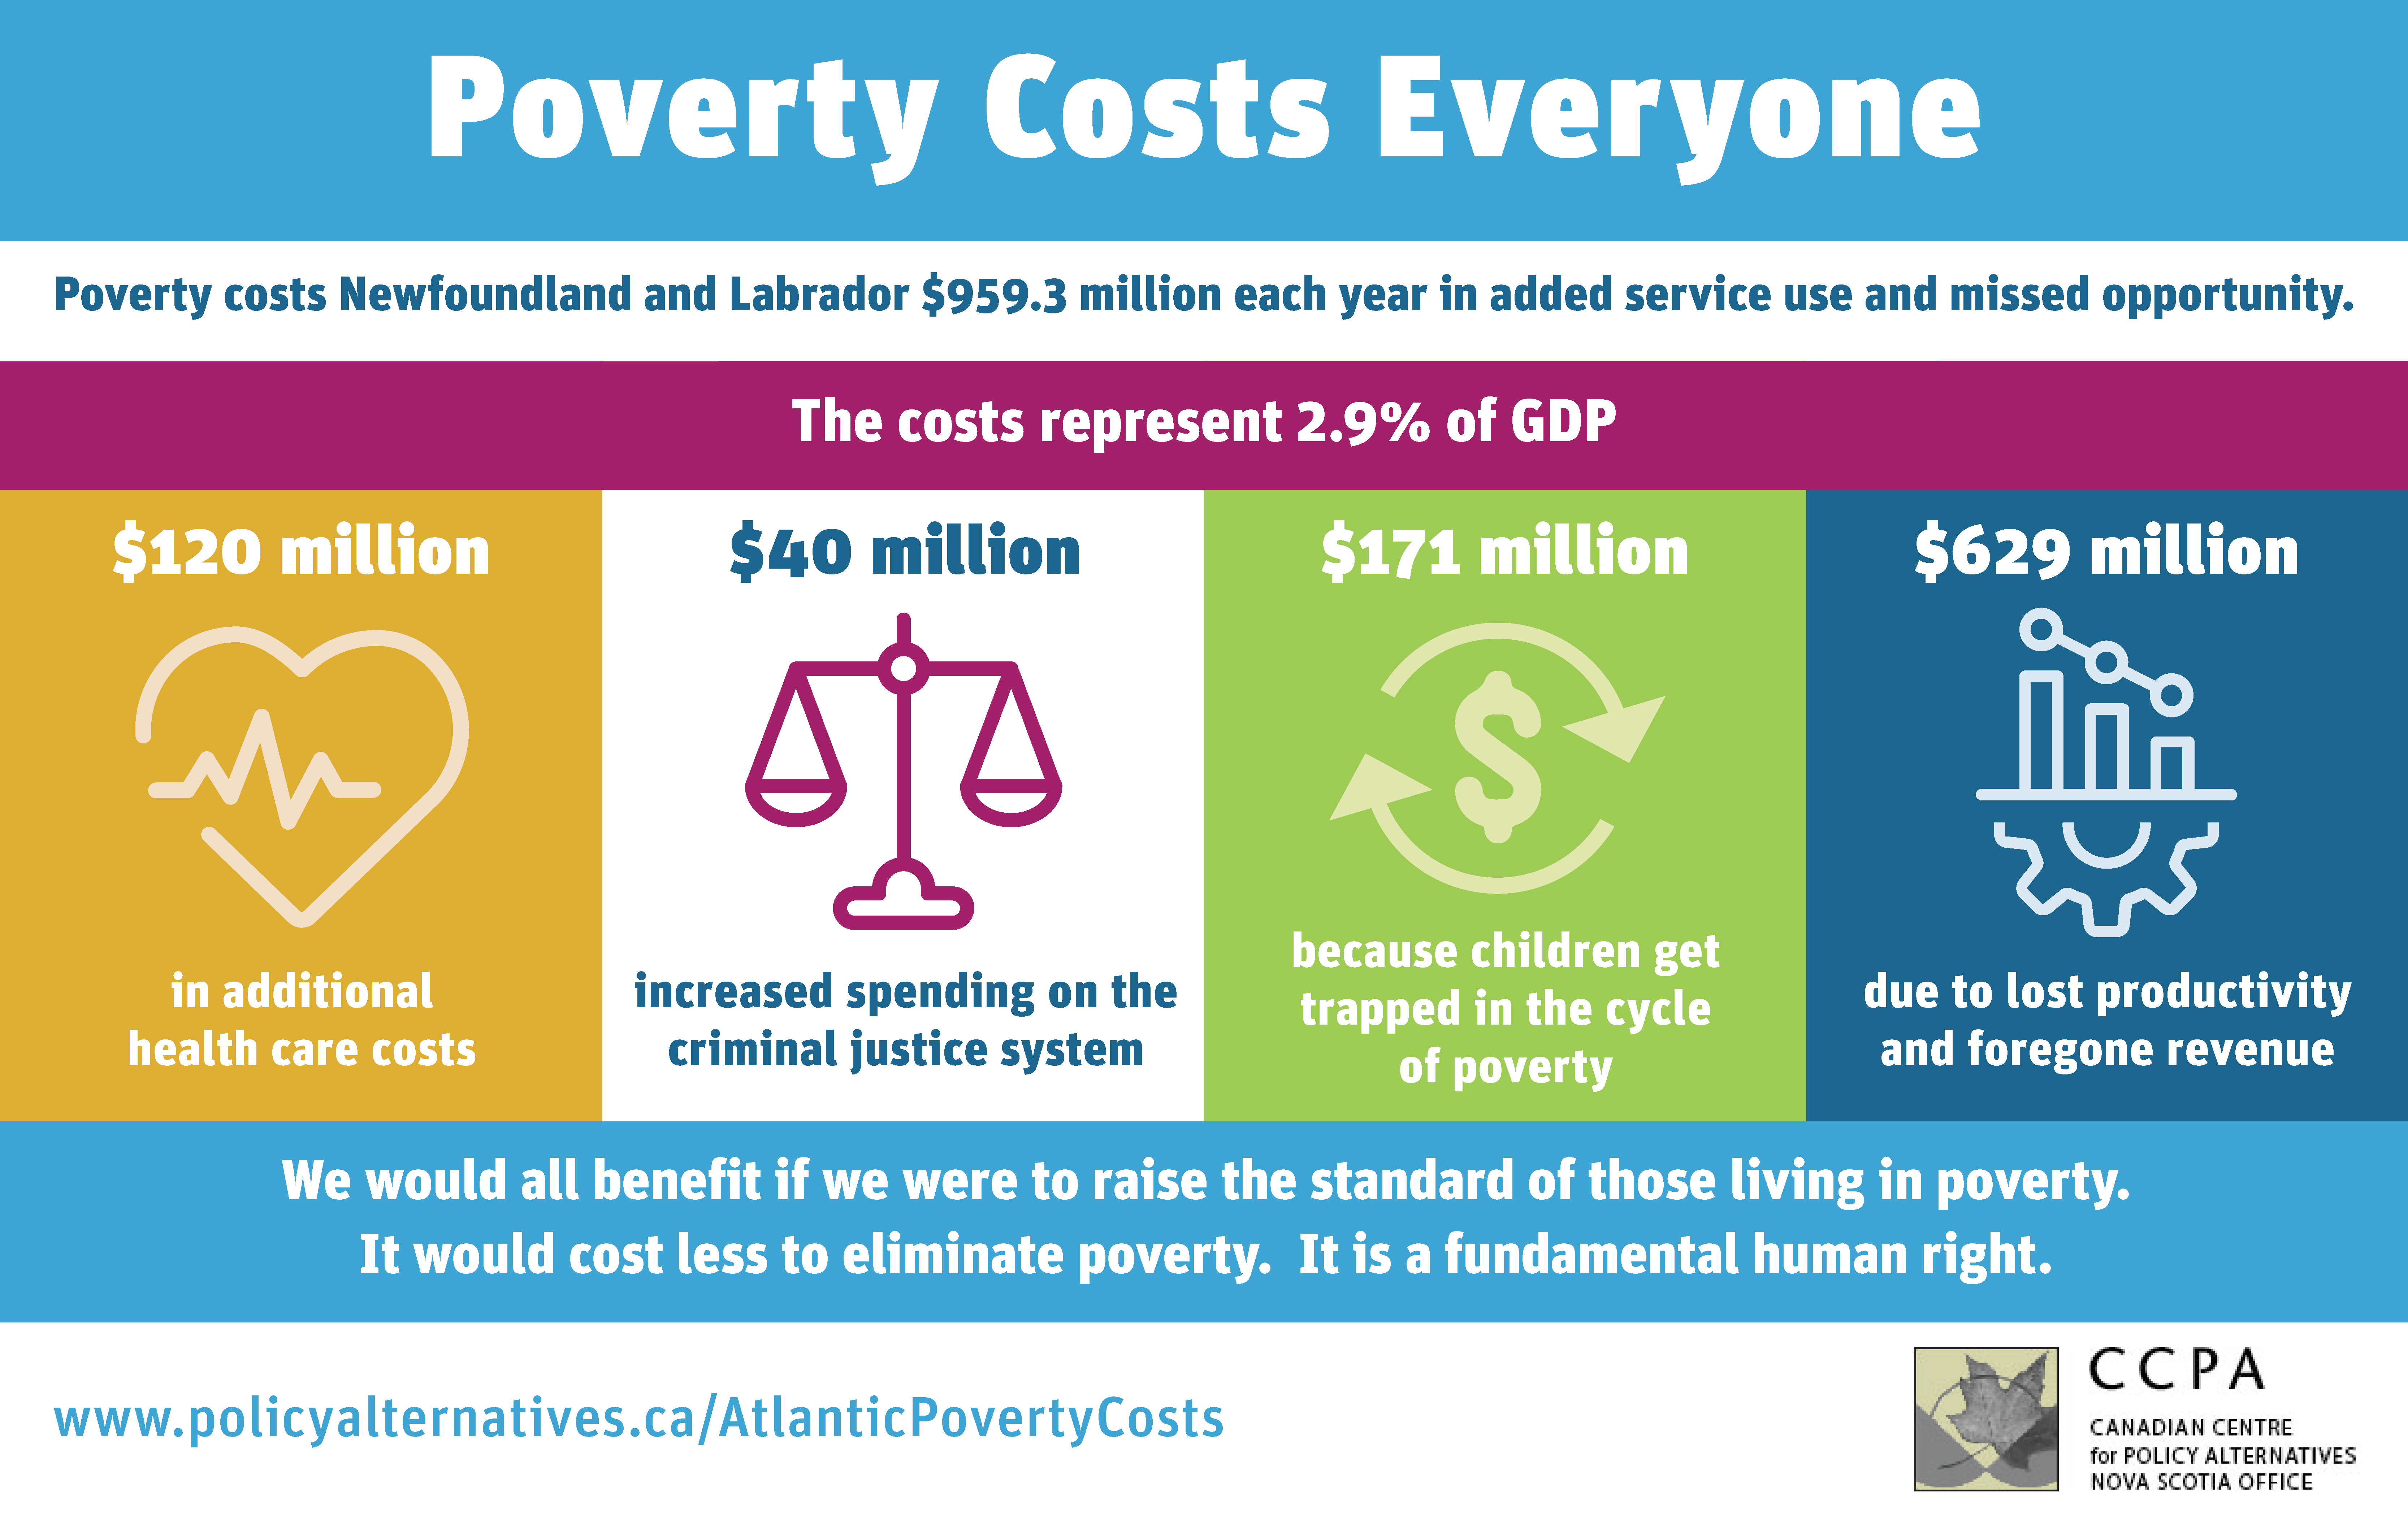 A graphic breakdown of poverty costs in Newfoundland and Labrador in 2021.